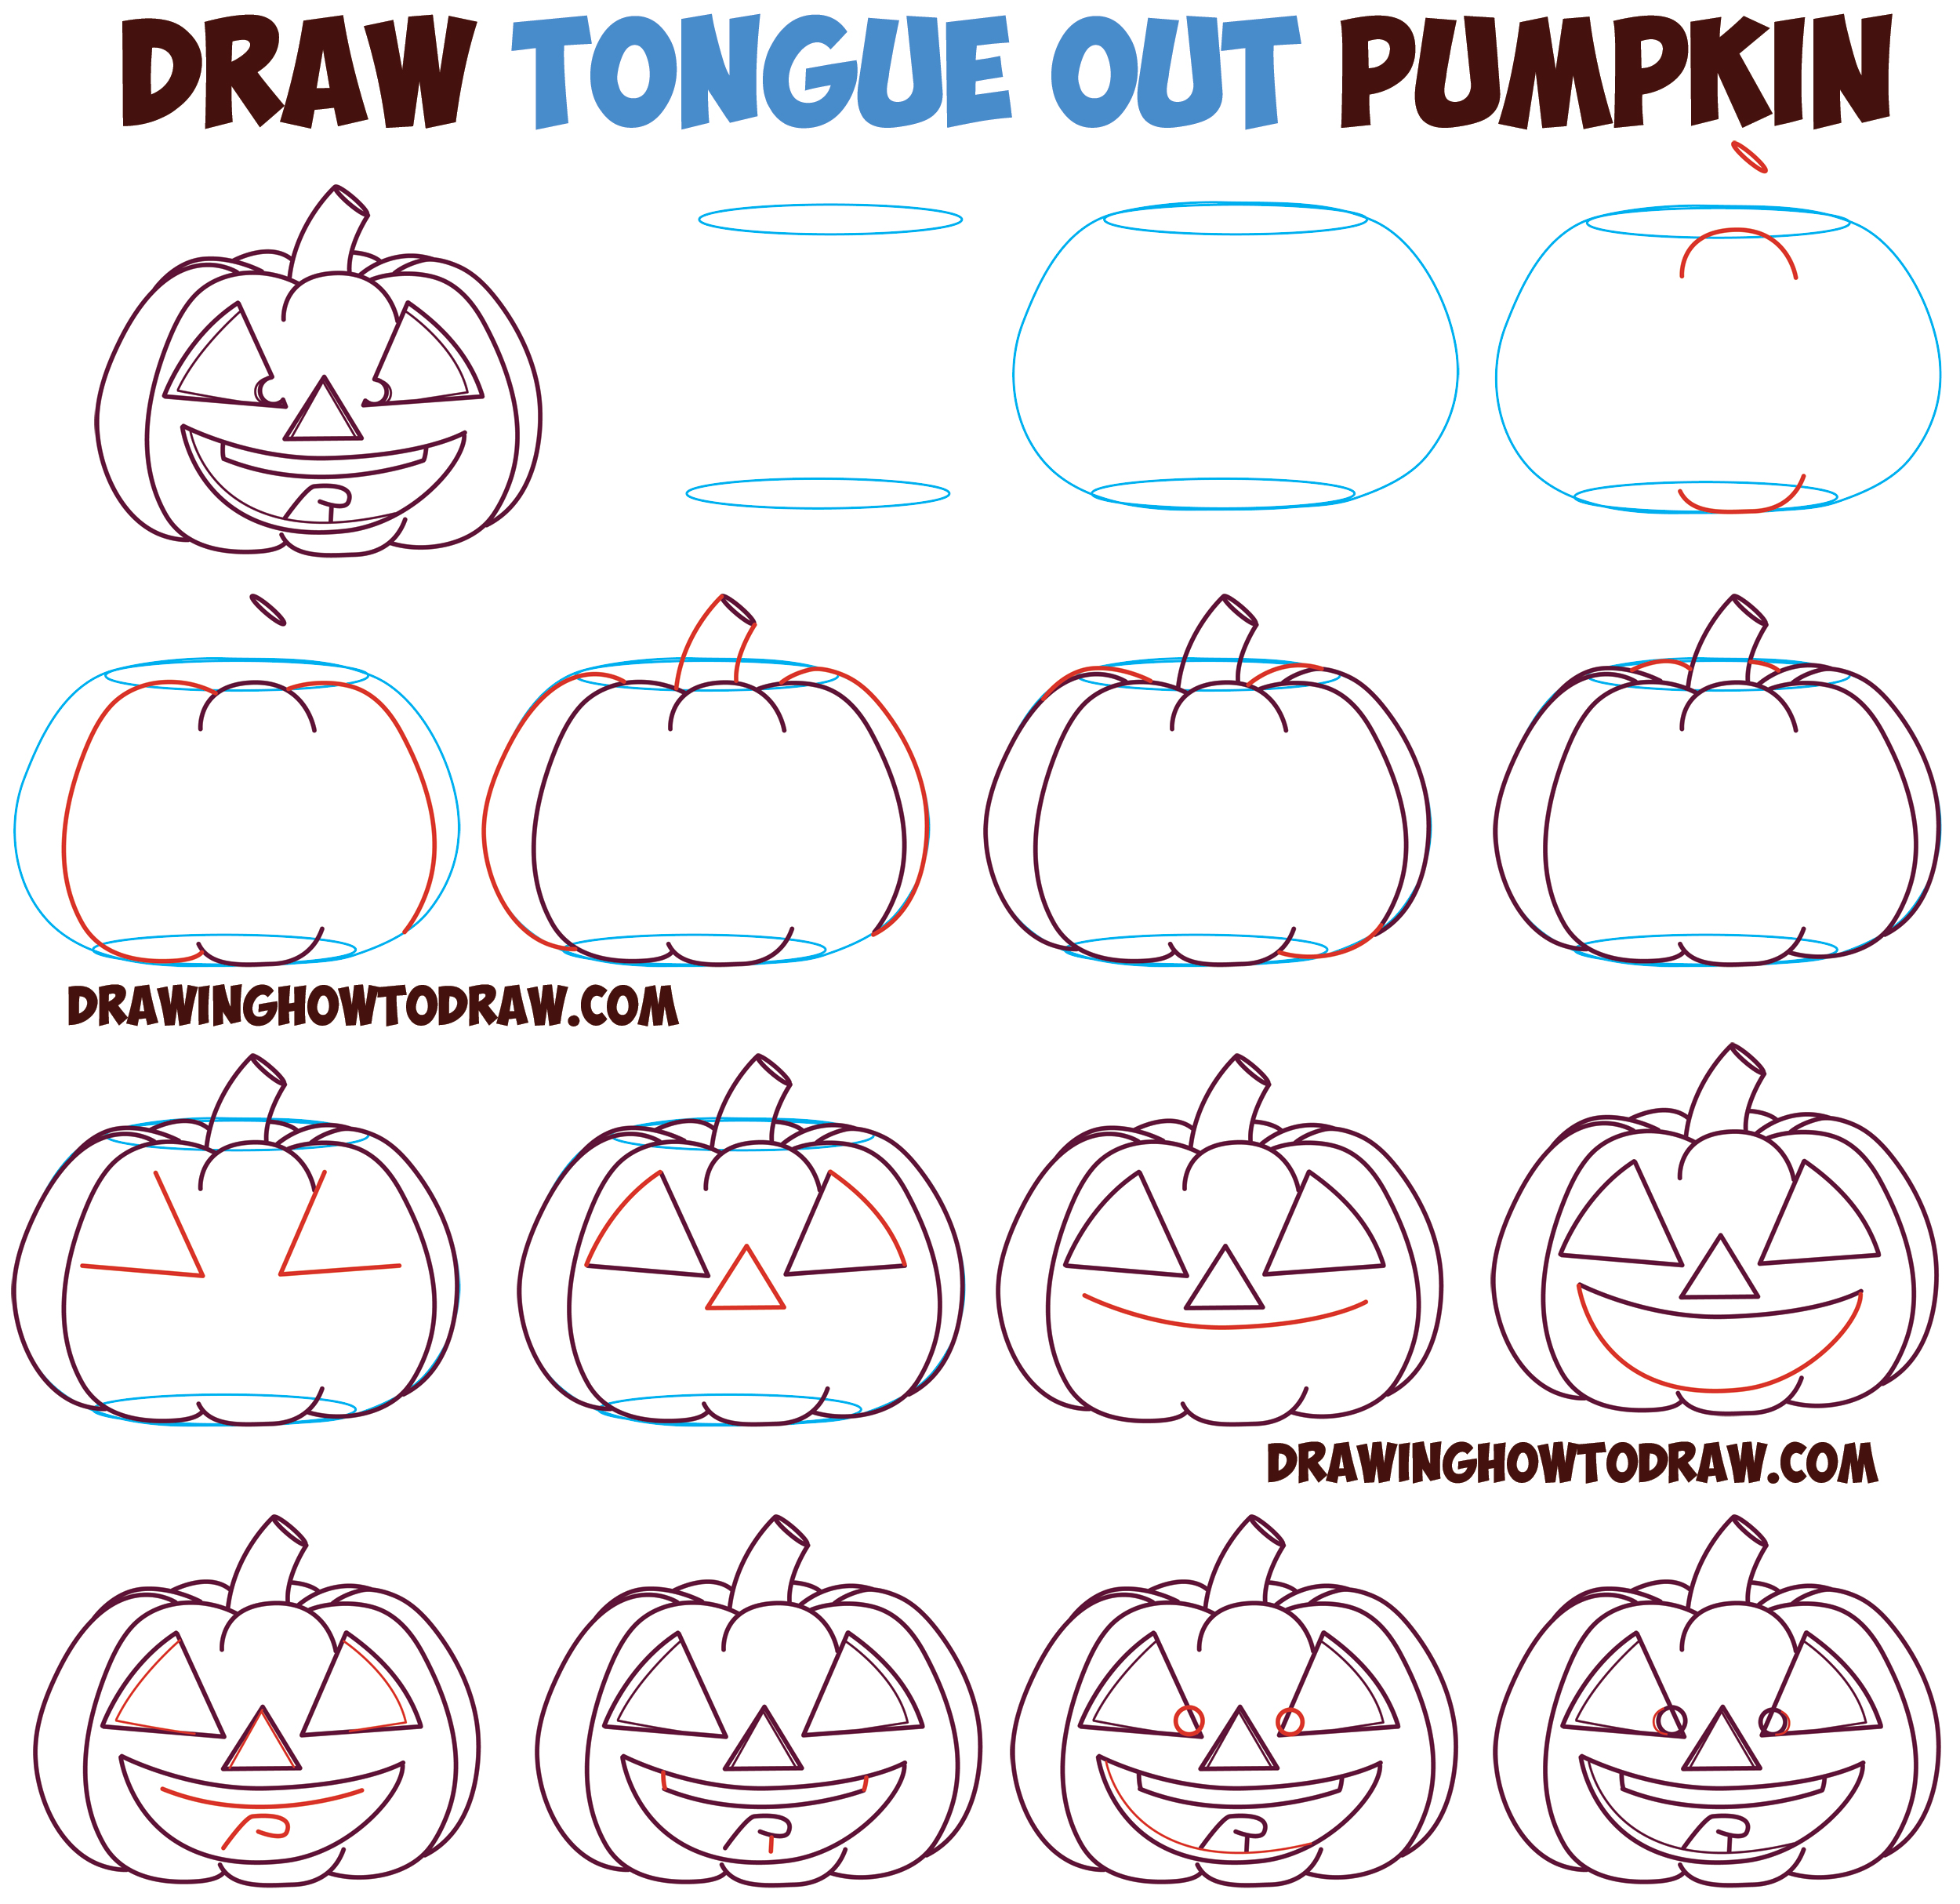 How to Draw Cartoon Pumpkin / Jack O'Lantern : Crossed Eyes with Tongue Out Smiling